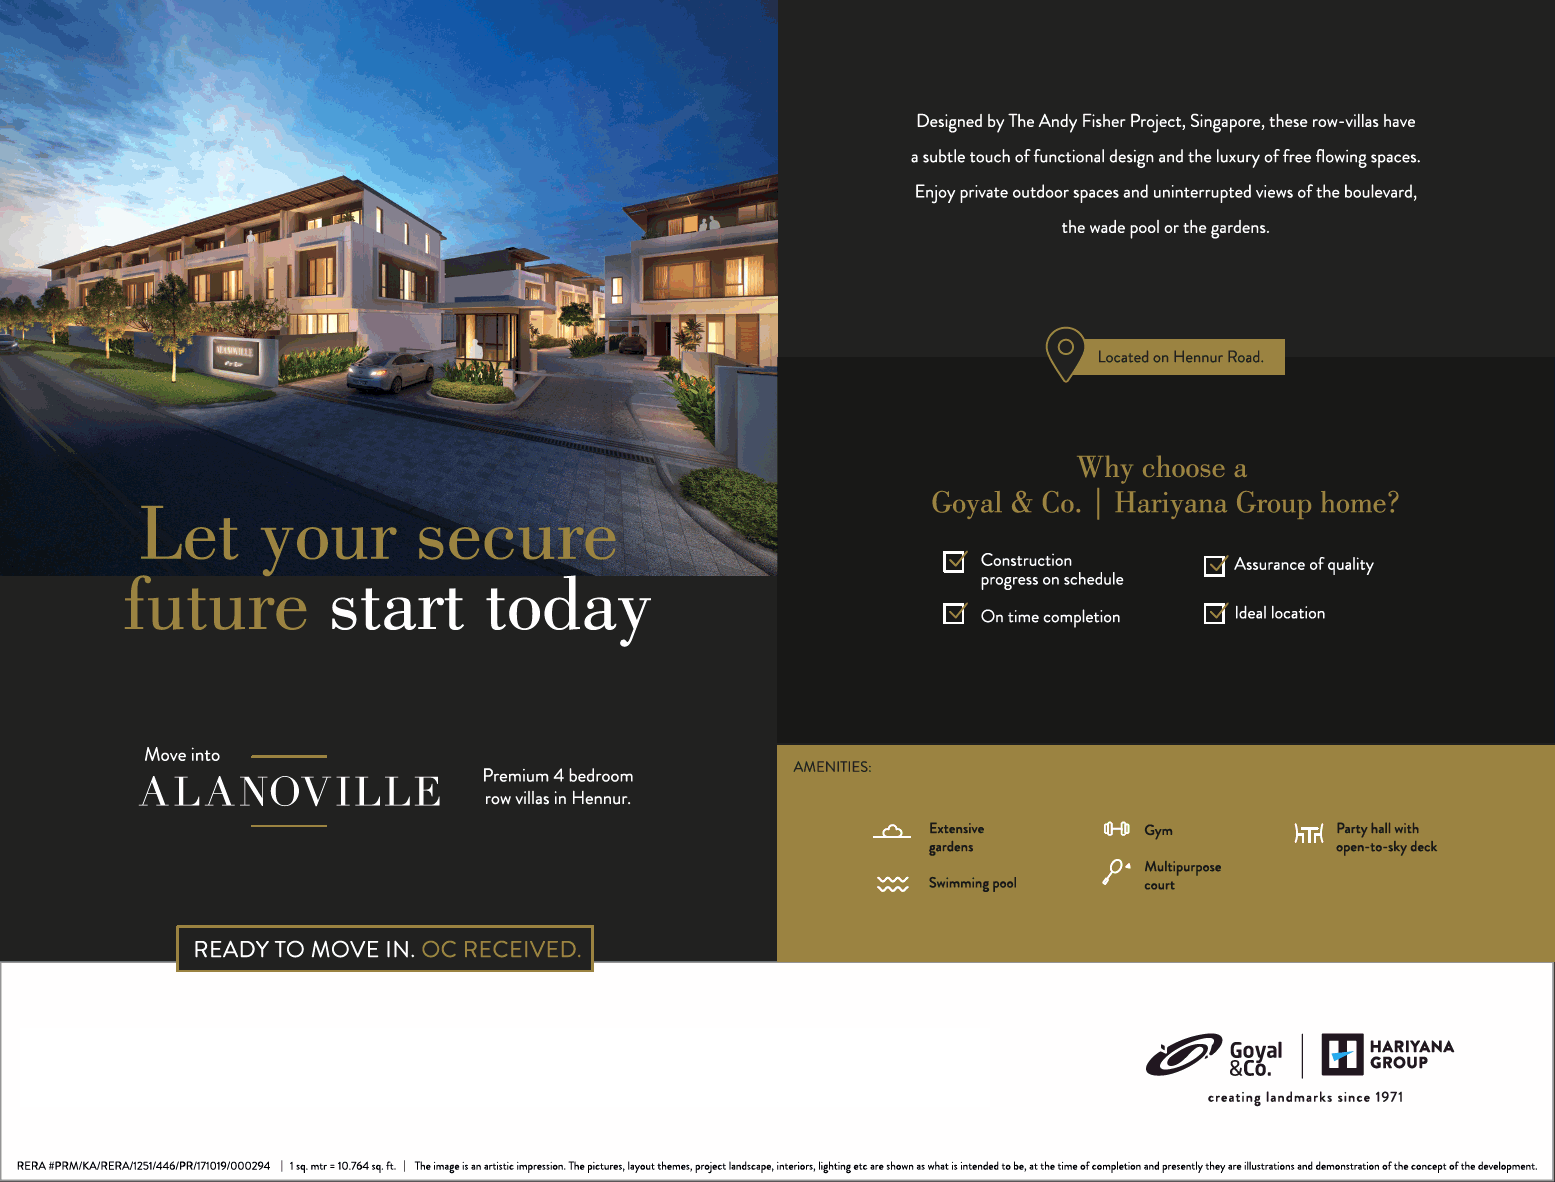 Goyal Alanoville premium 4 bedroom row villas in Hennur Bangalore